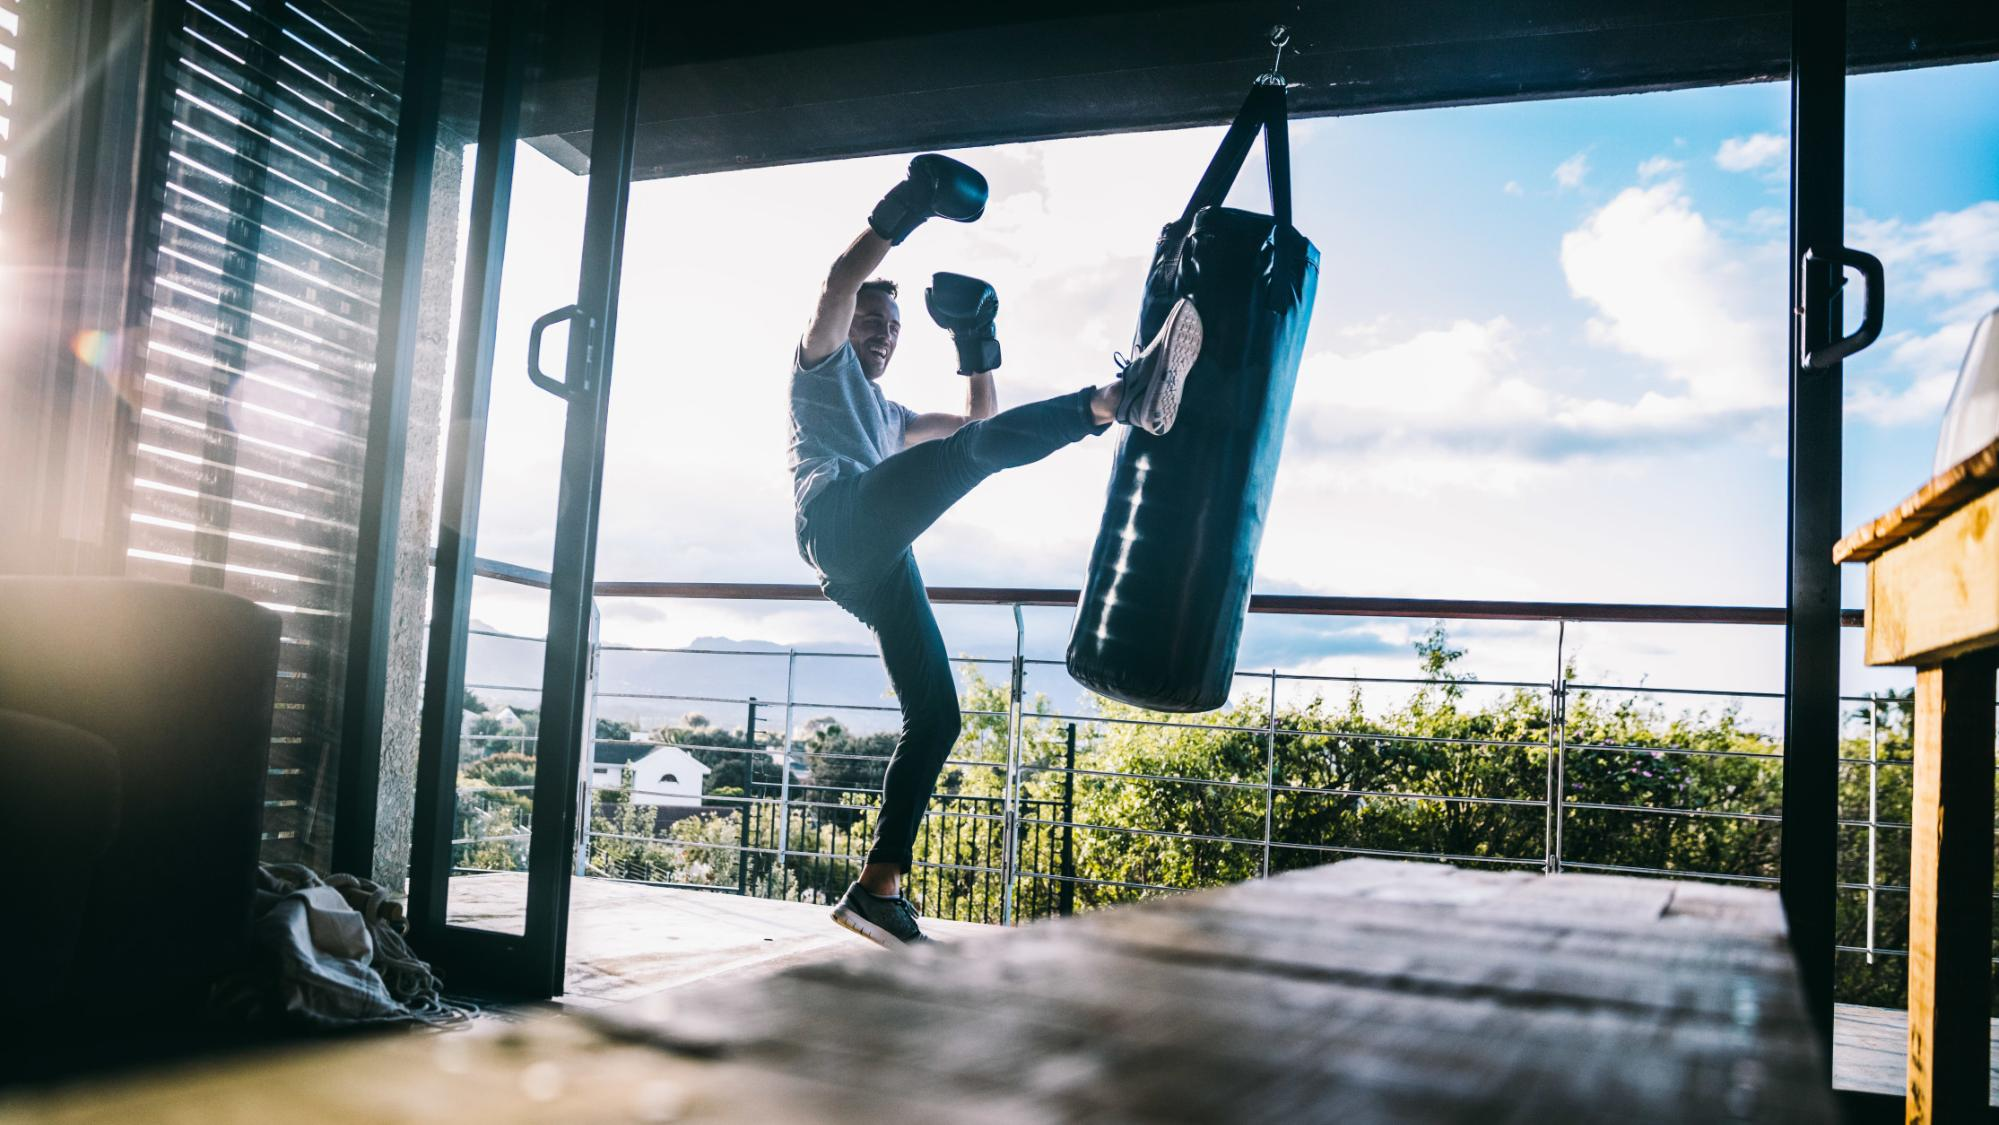 Young man jumping and kicking a punching bag